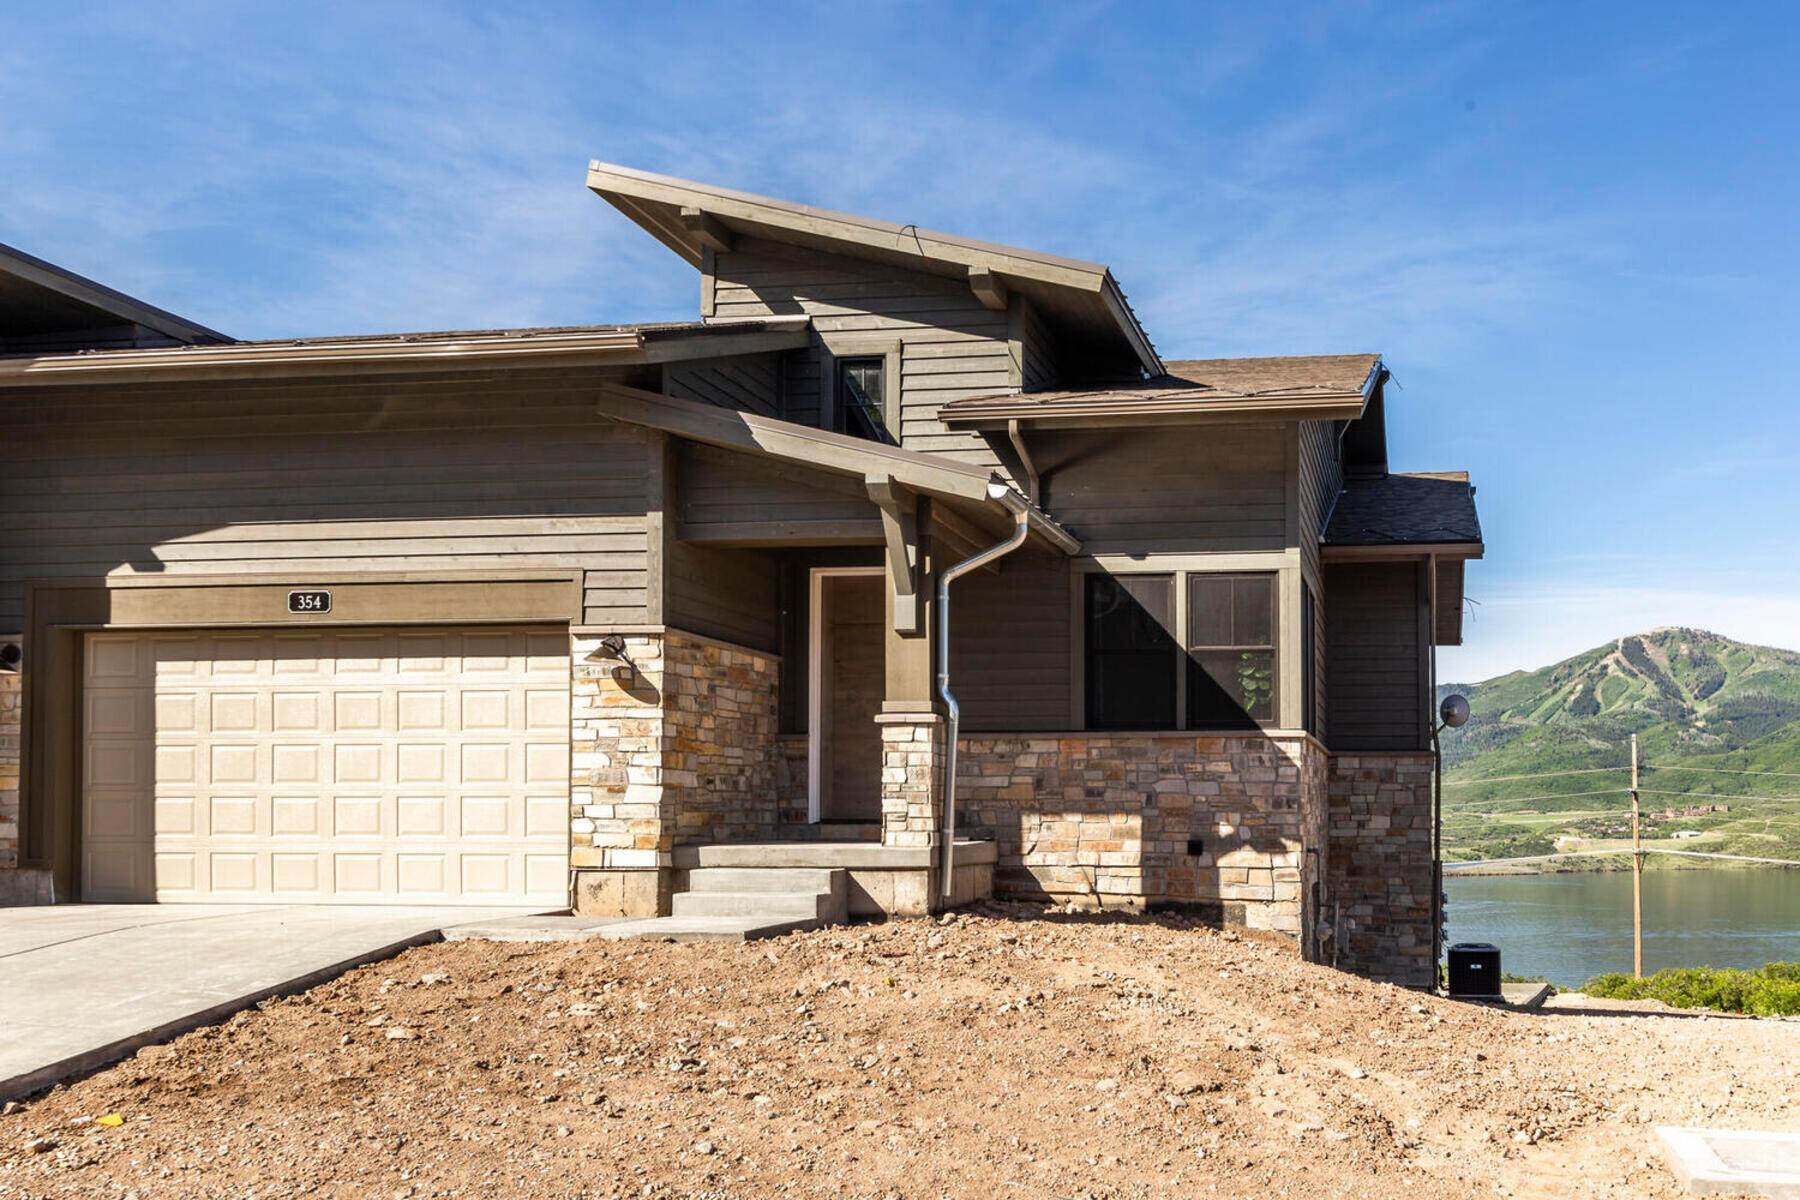 townhouses for Sale at New Lakefront Community with Views of Deer Valley Resort & Jordanelle Reservoir 402 E Overlook Loop, Lot #13 Hideout Canyon, Utah 84036 United States